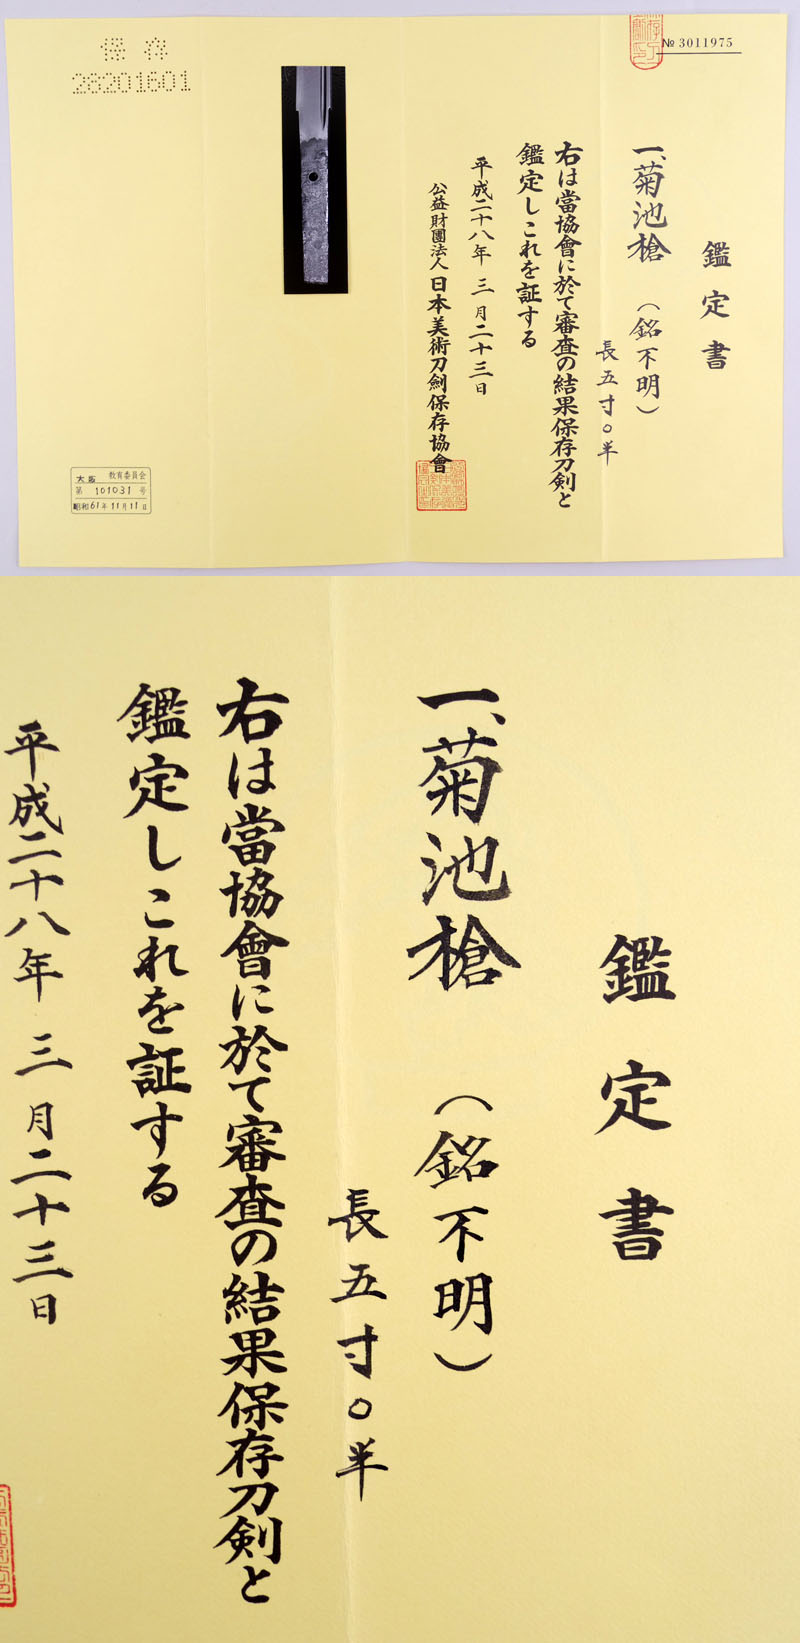 菊池槍(銘不明) Picture of Certificate